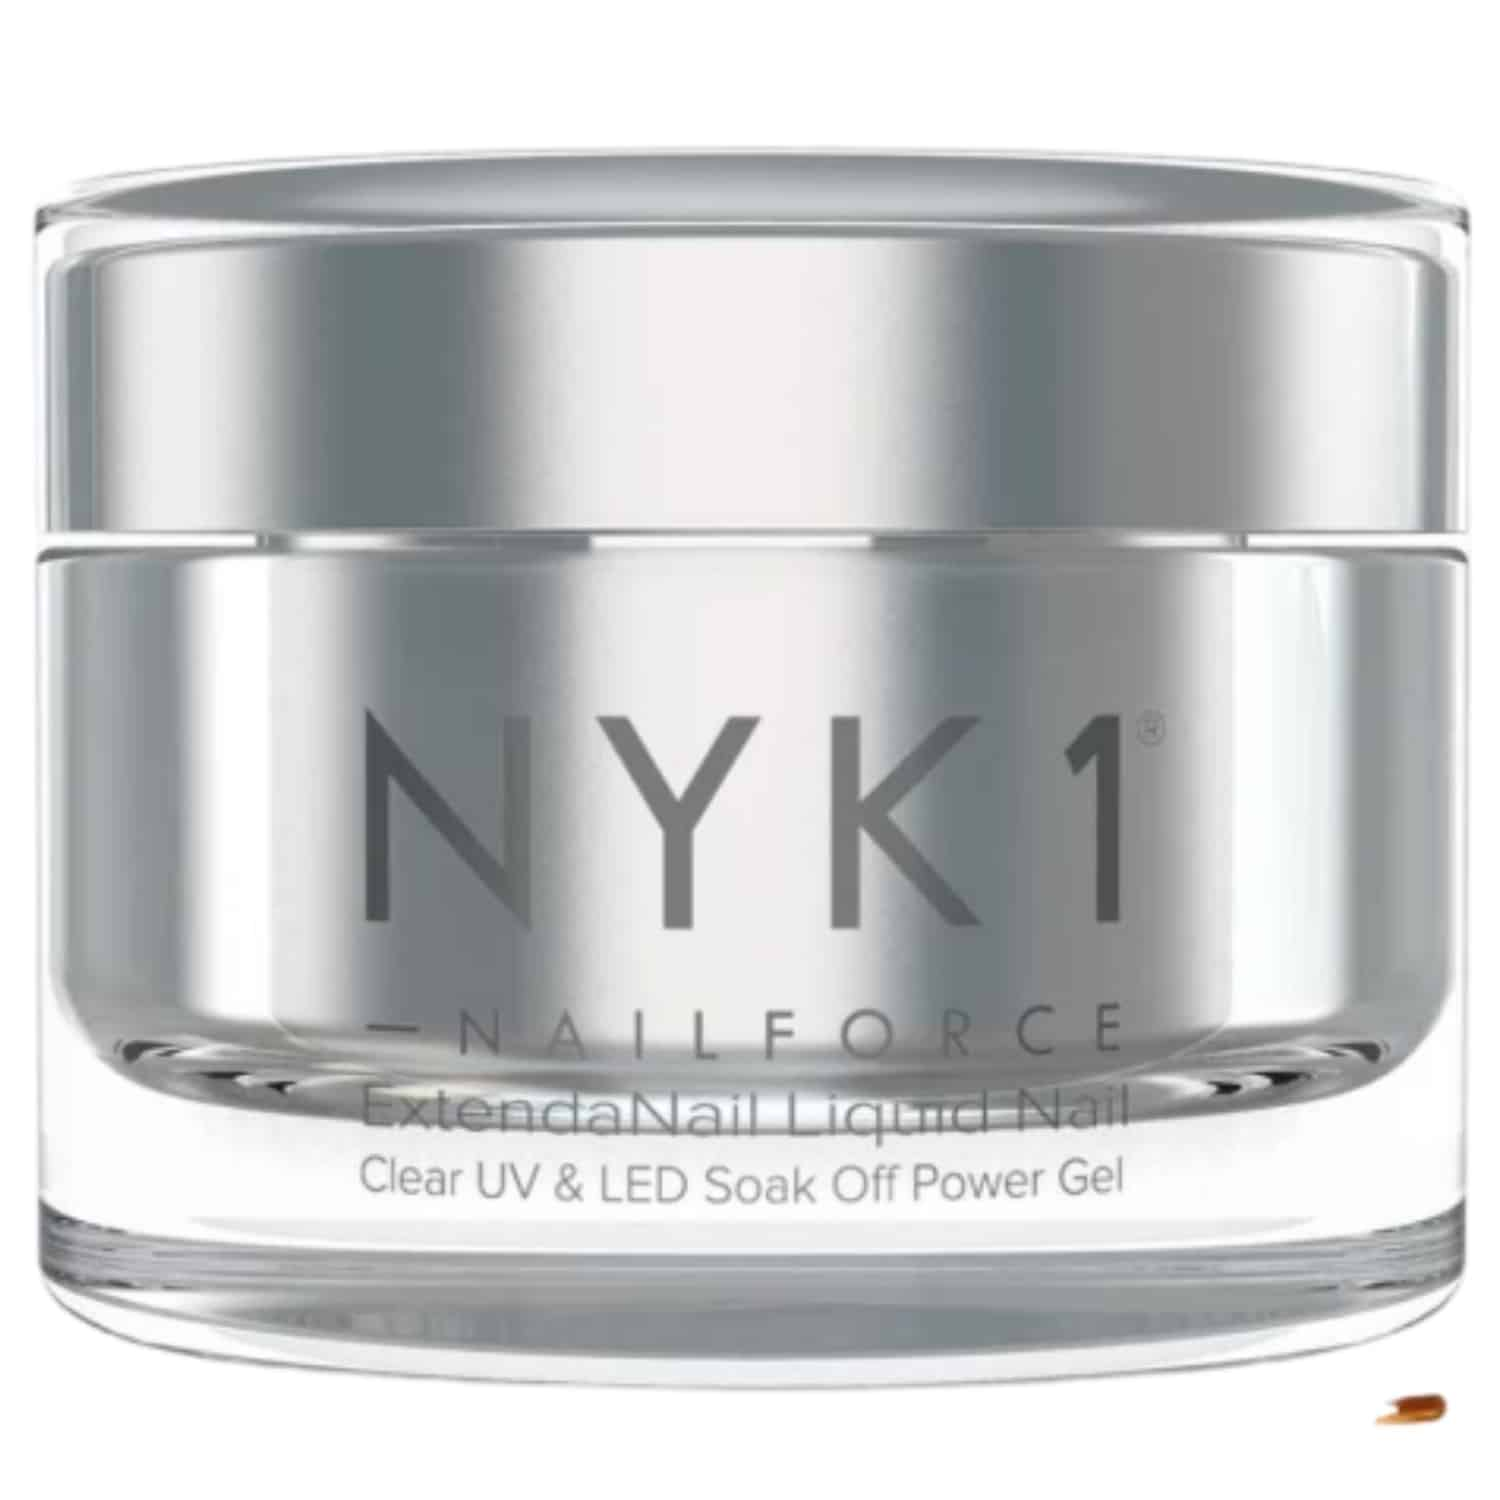 NYK 1 Power Builder